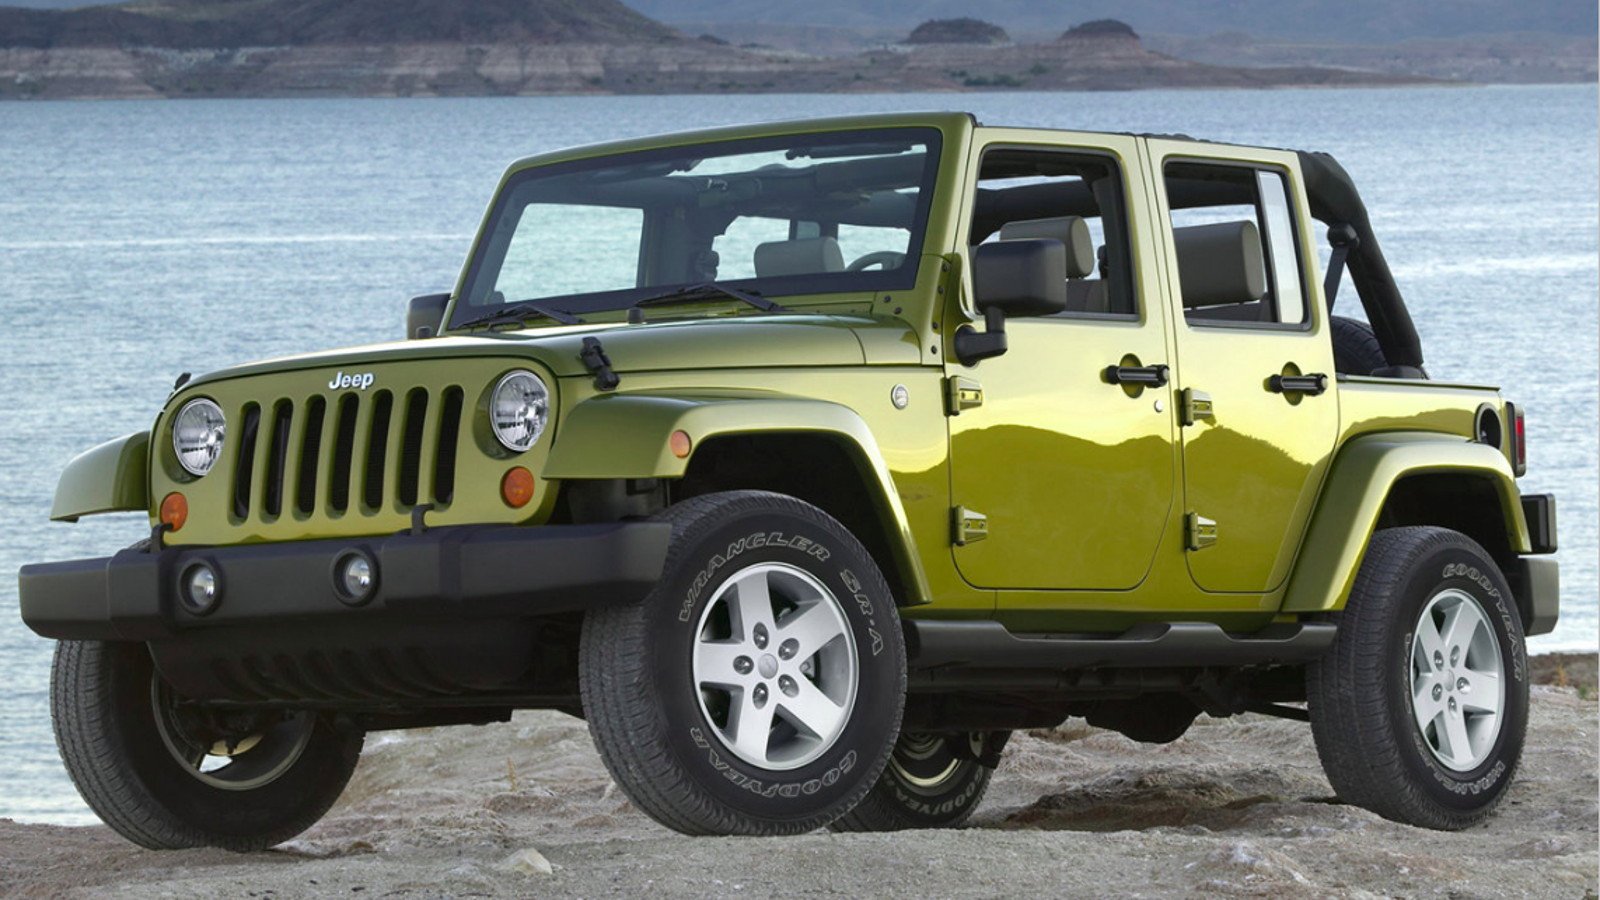 Say Farewell To The Jeep Wrangler Jk Most Important Of A Power Wheels Parts Diagram Generation